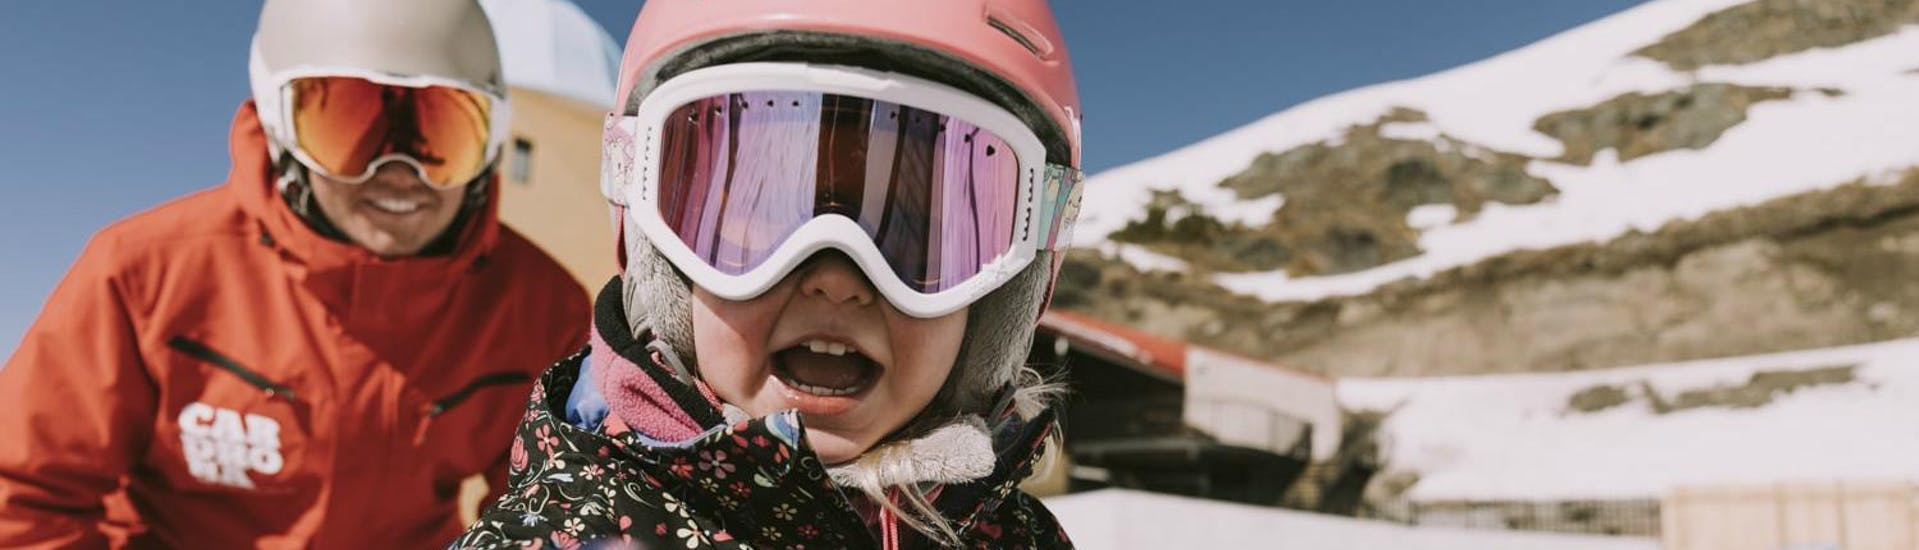 Kids Ski Lessons (3½ - 4 years) - First Timer